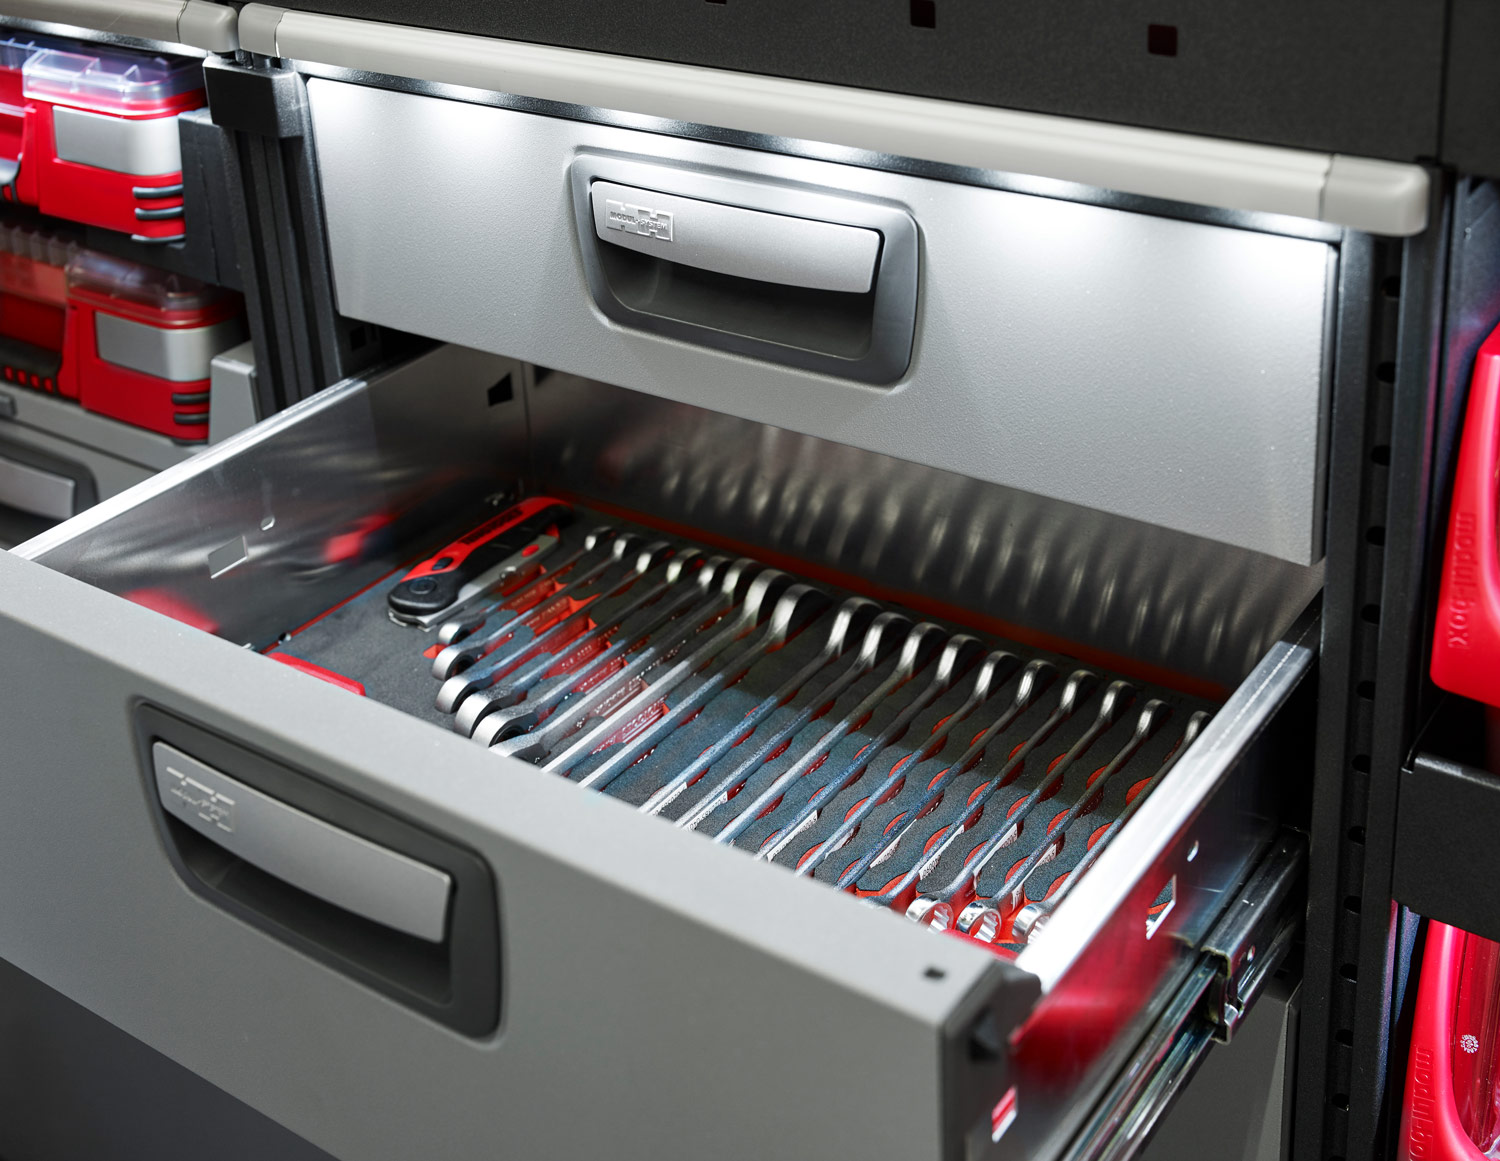 Example of modul-system drawer with spanners organised